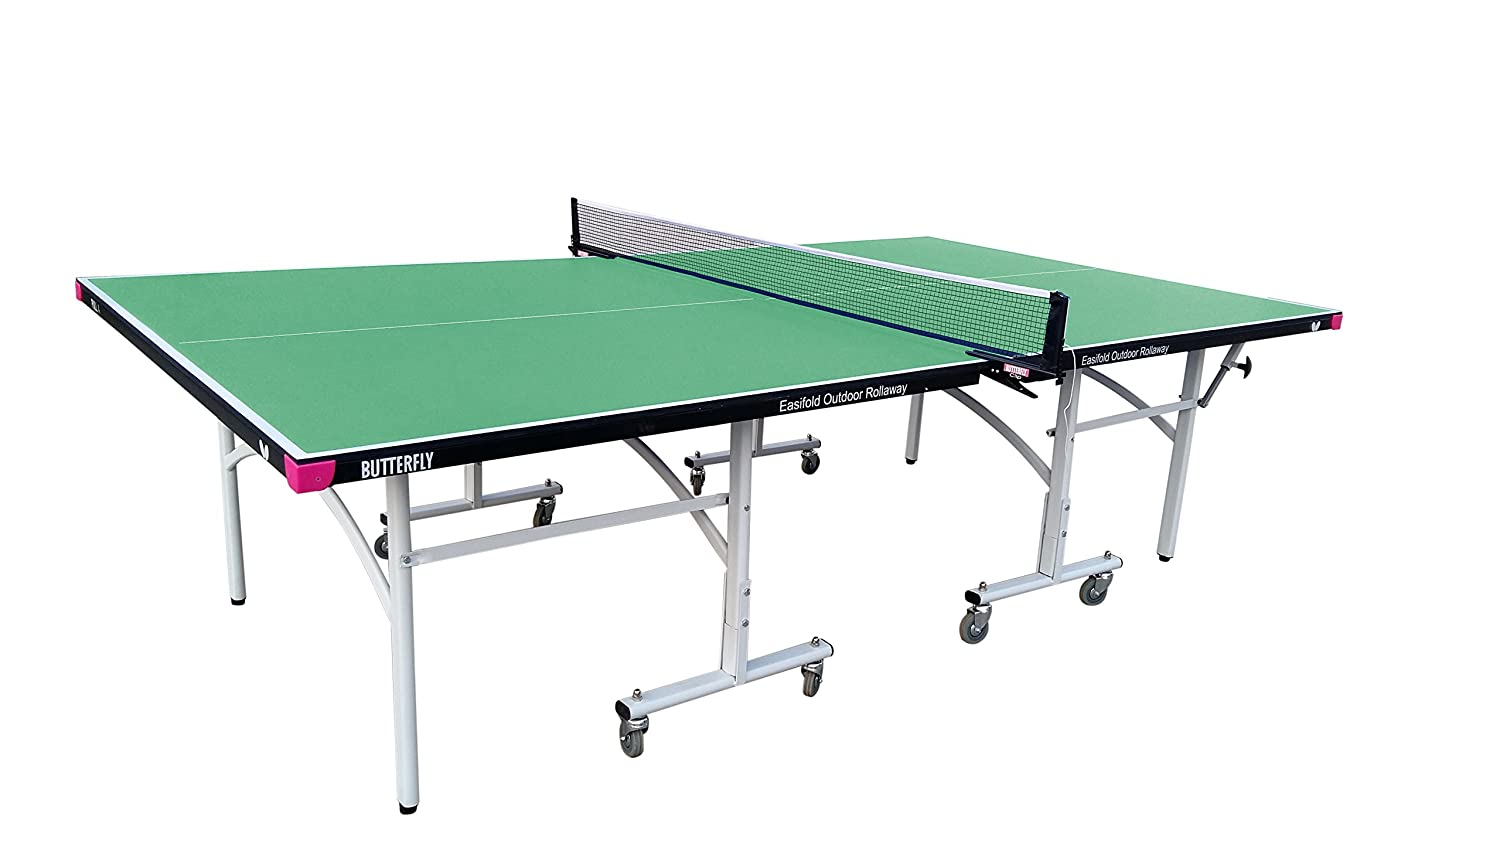 Amazon.com : Butterfly Easifold Outdoor Rollaway Table Tennis Table, Blue :  Sports U0026 Outdoors